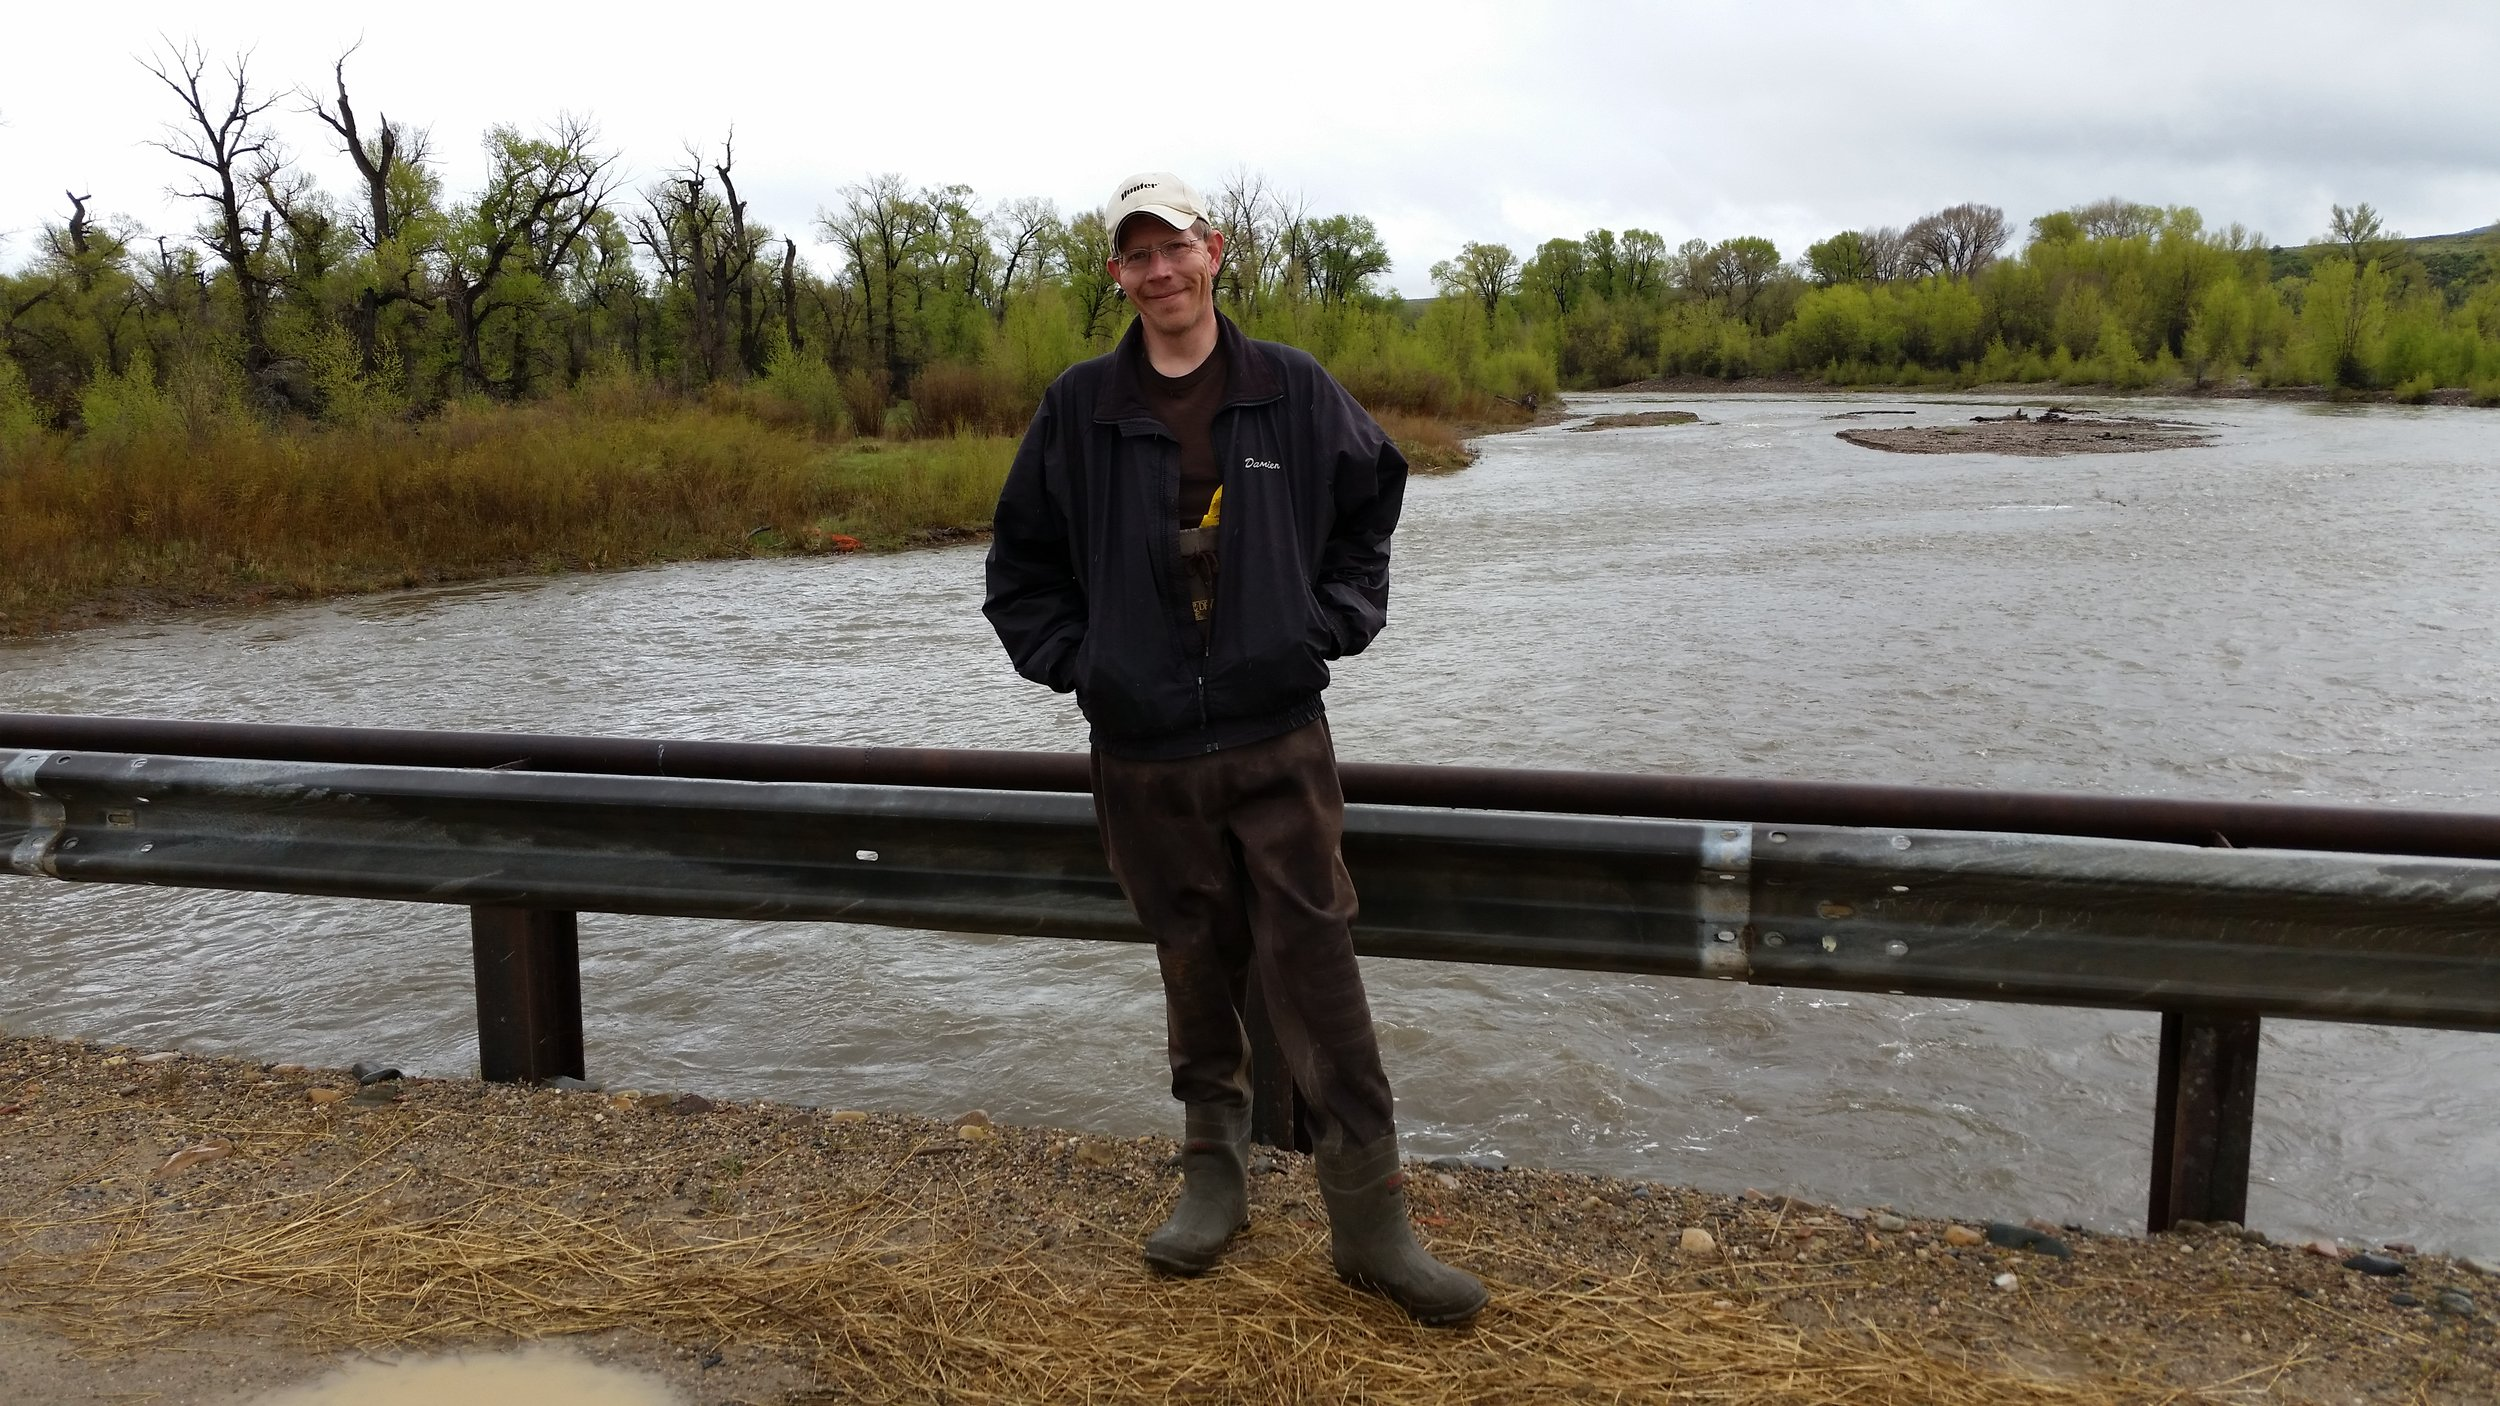 Damien Willis stands on a bridge over the Little Snake River near Dixon, WY.